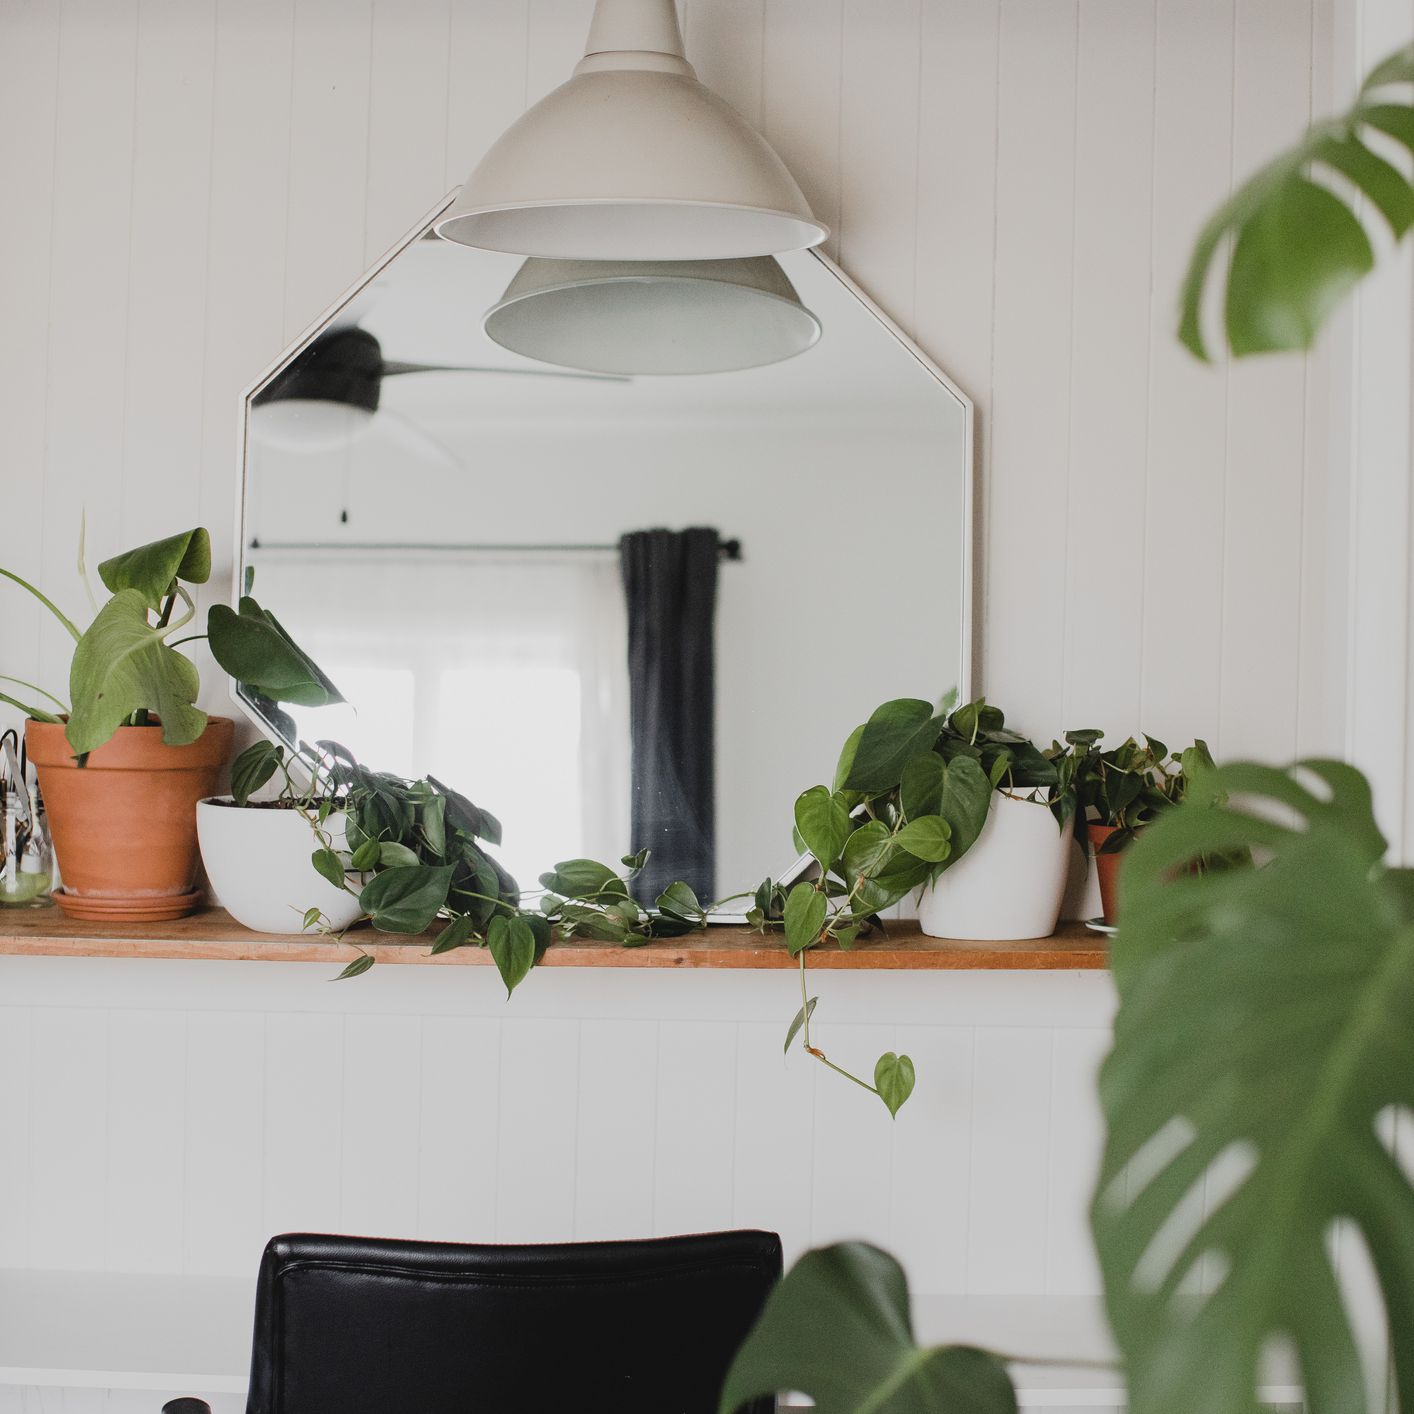 home office area with plants, mirror and light